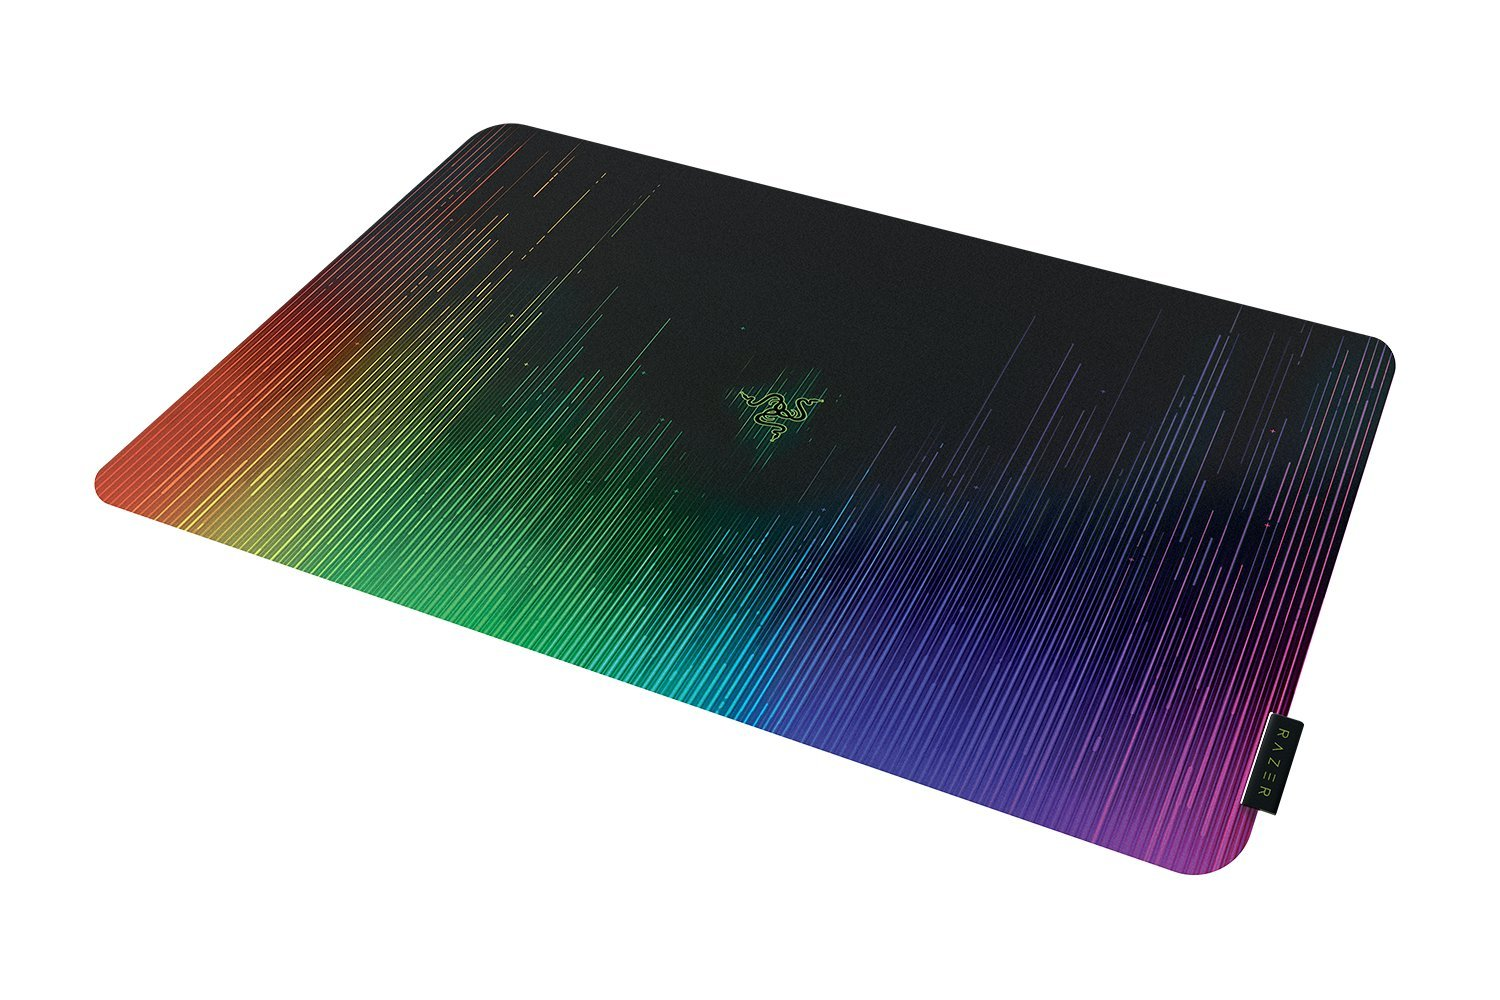 Razer Sphex V2 - Ultra Thin Polycarbonate Professional-Grade Gaming Mouse Mat - Non-Slip Adhesive Base